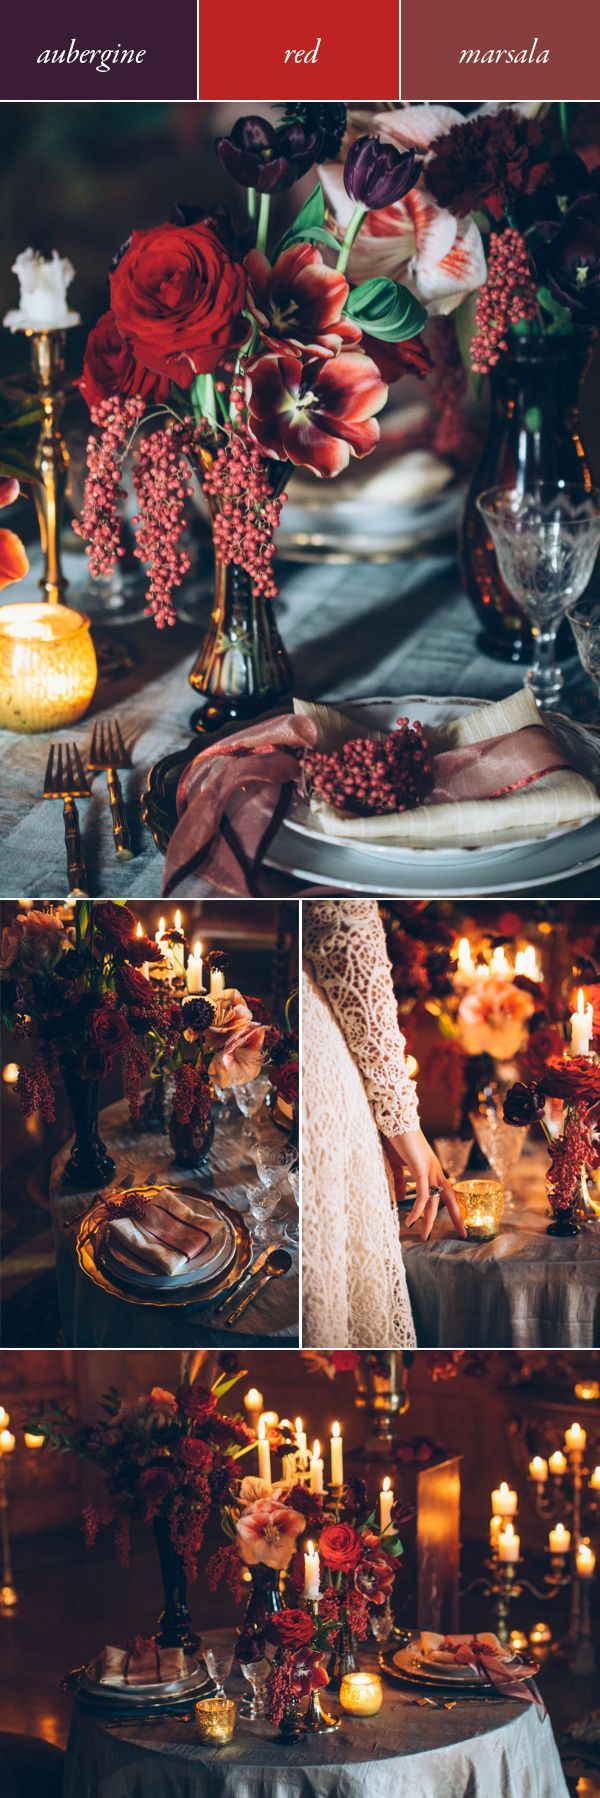 If you aim to give the royal wedding a run for its money, implement a color palette of regal shades like aubergine, red, and marsala. | Images by Stefano Santucci